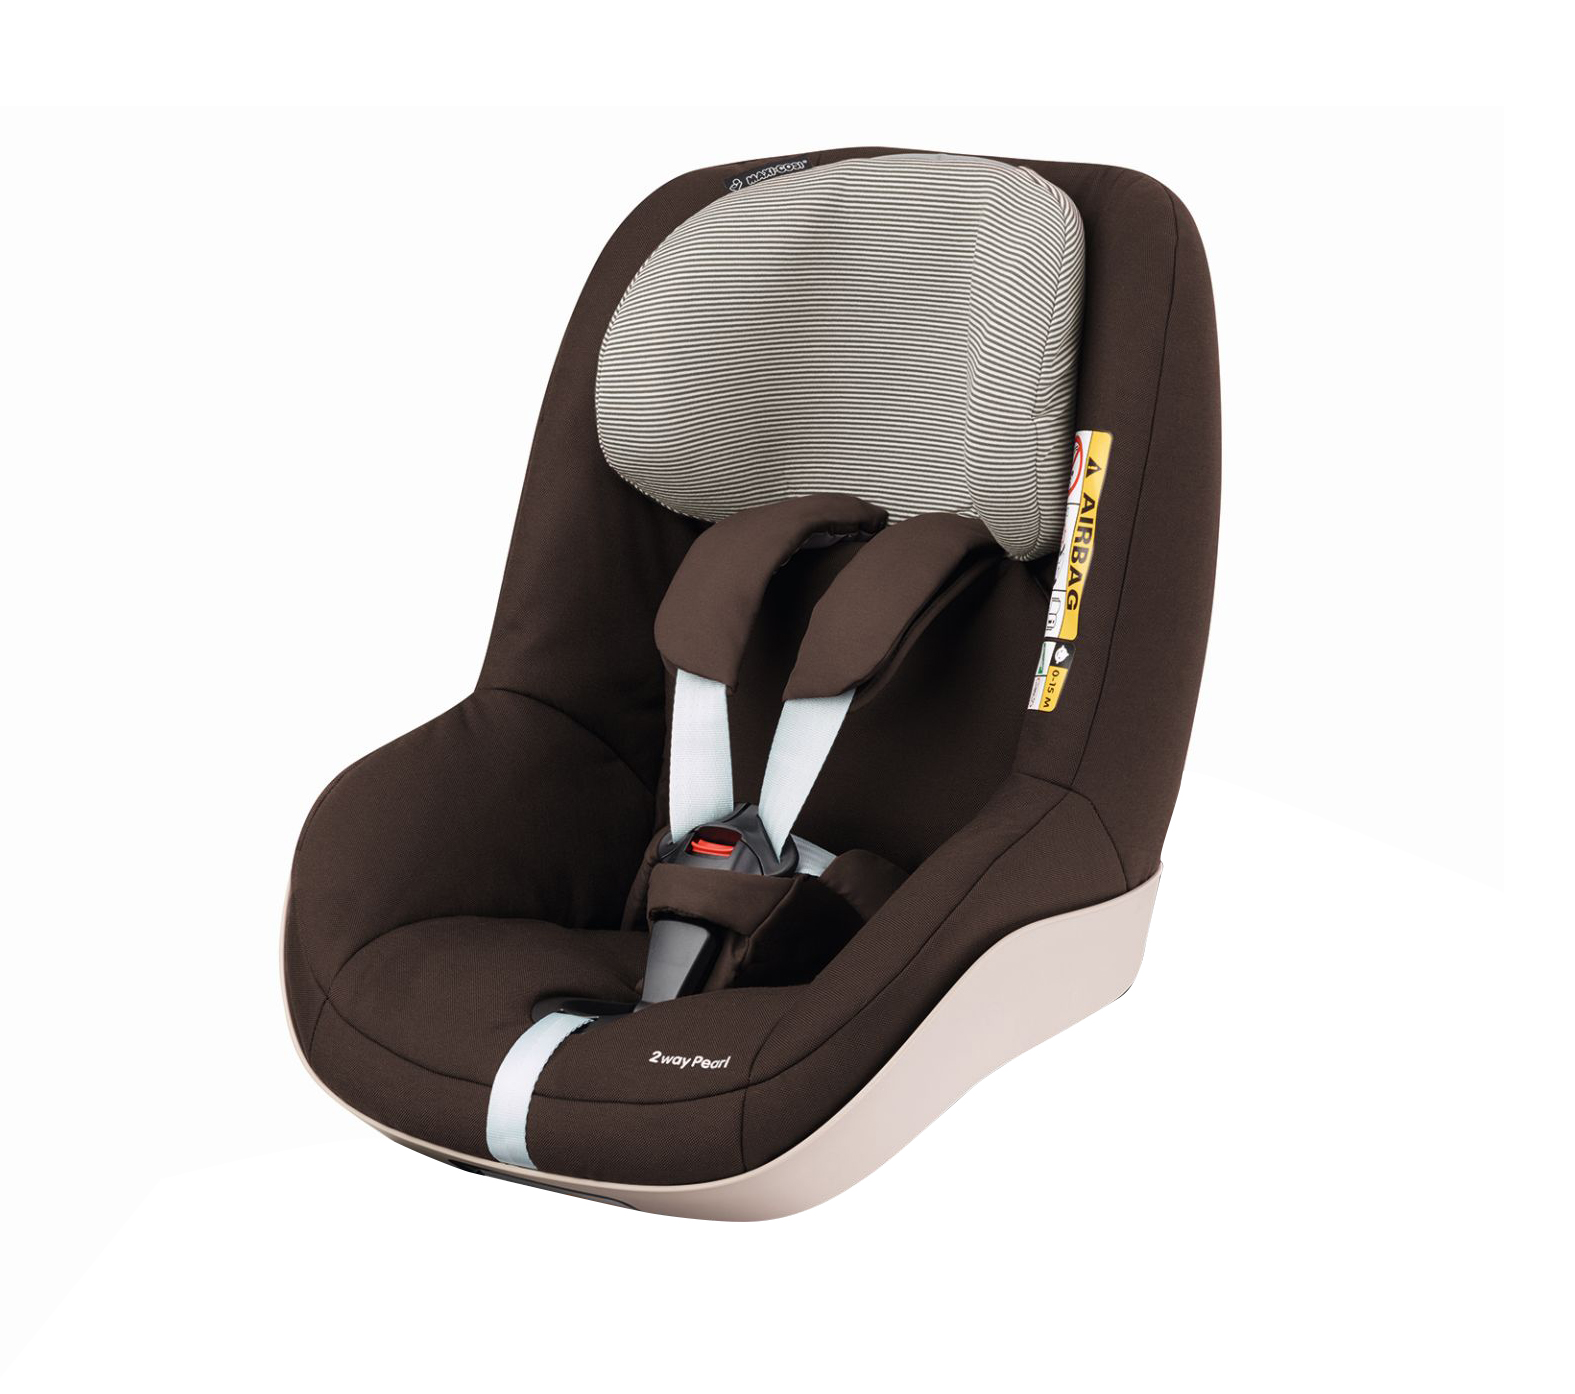 maxi cosi safety seat 2way pearl 2017 earth brown buy at kidsroom car seats. Black Bedroom Furniture Sets. Home Design Ideas